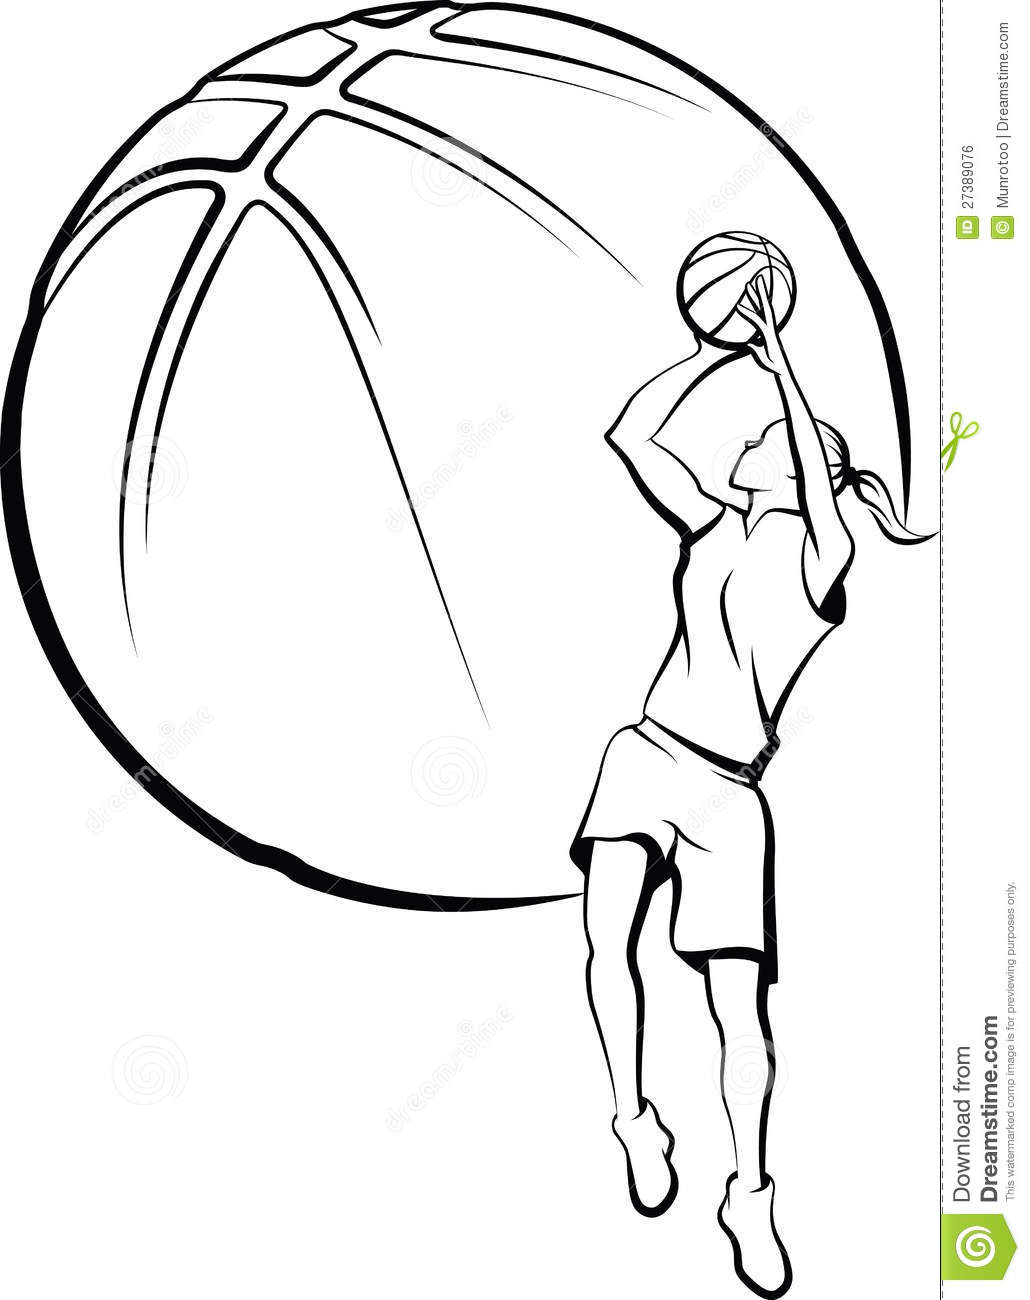 Girls Basketball Clipart Black And White